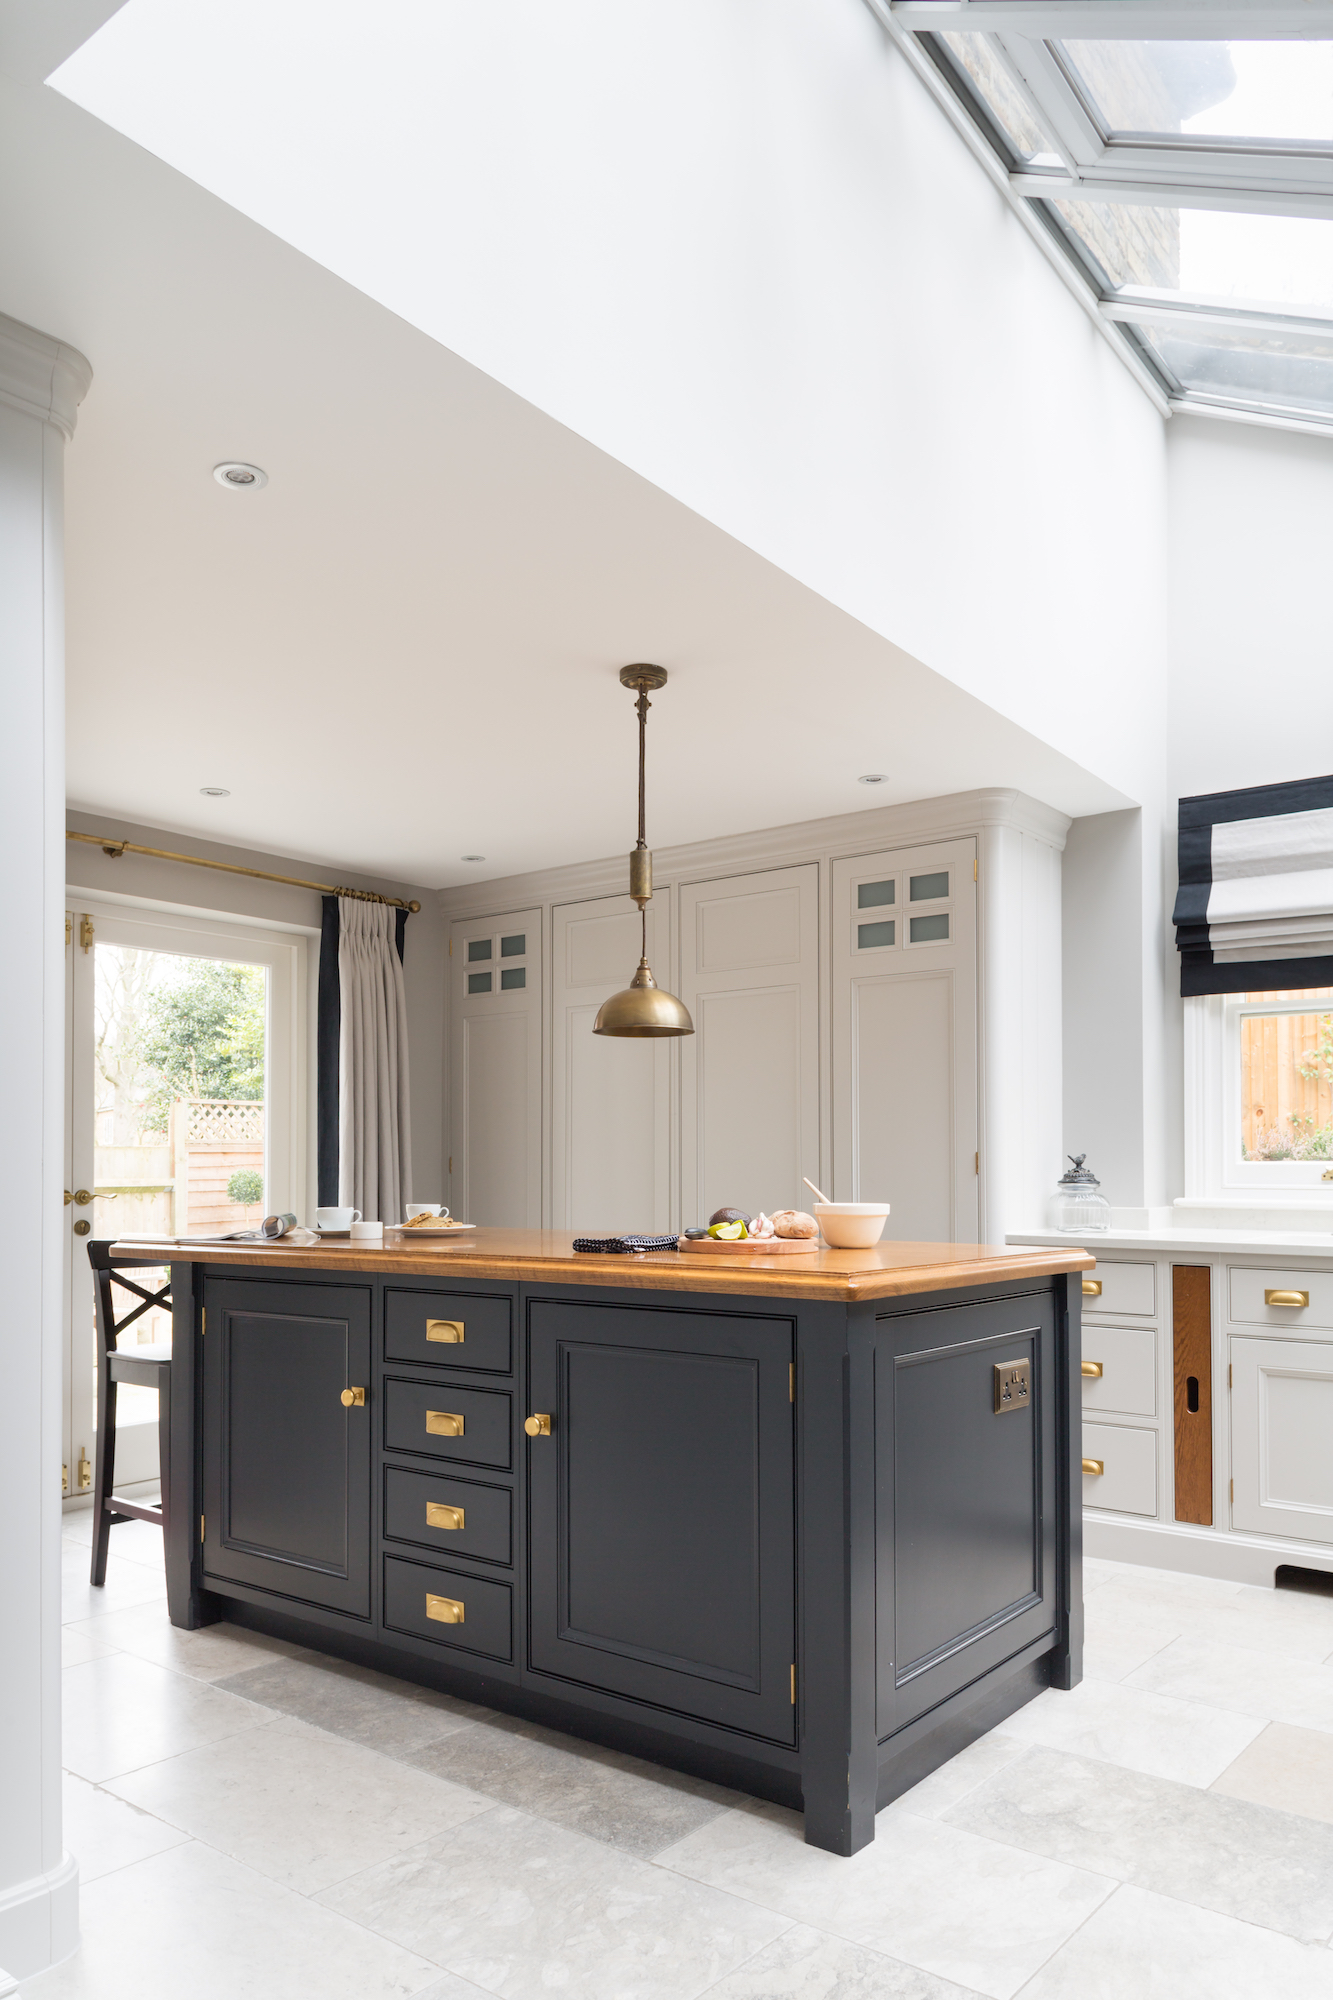 Luxury Bespoke Kitchen, Blackheath London - Humphrey Munson